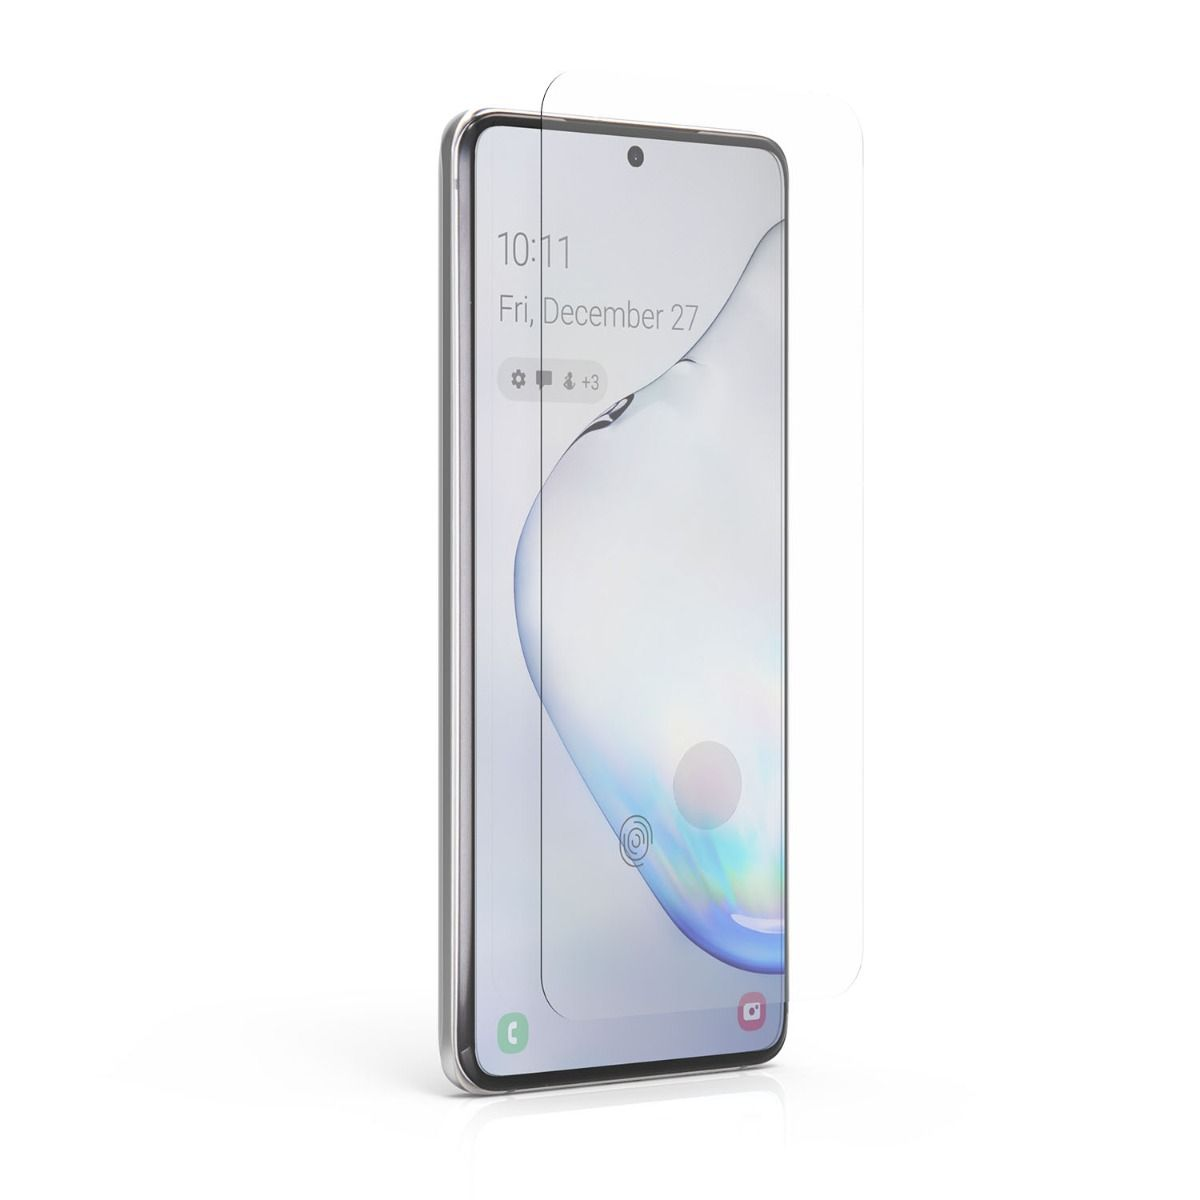 Samsung Galaxy S20 Steel 360 Curved Glass Fingerprint Sensor Ready Screen Protector with Clear Borders, Alignment Tray, and Pure Pledge up to $100